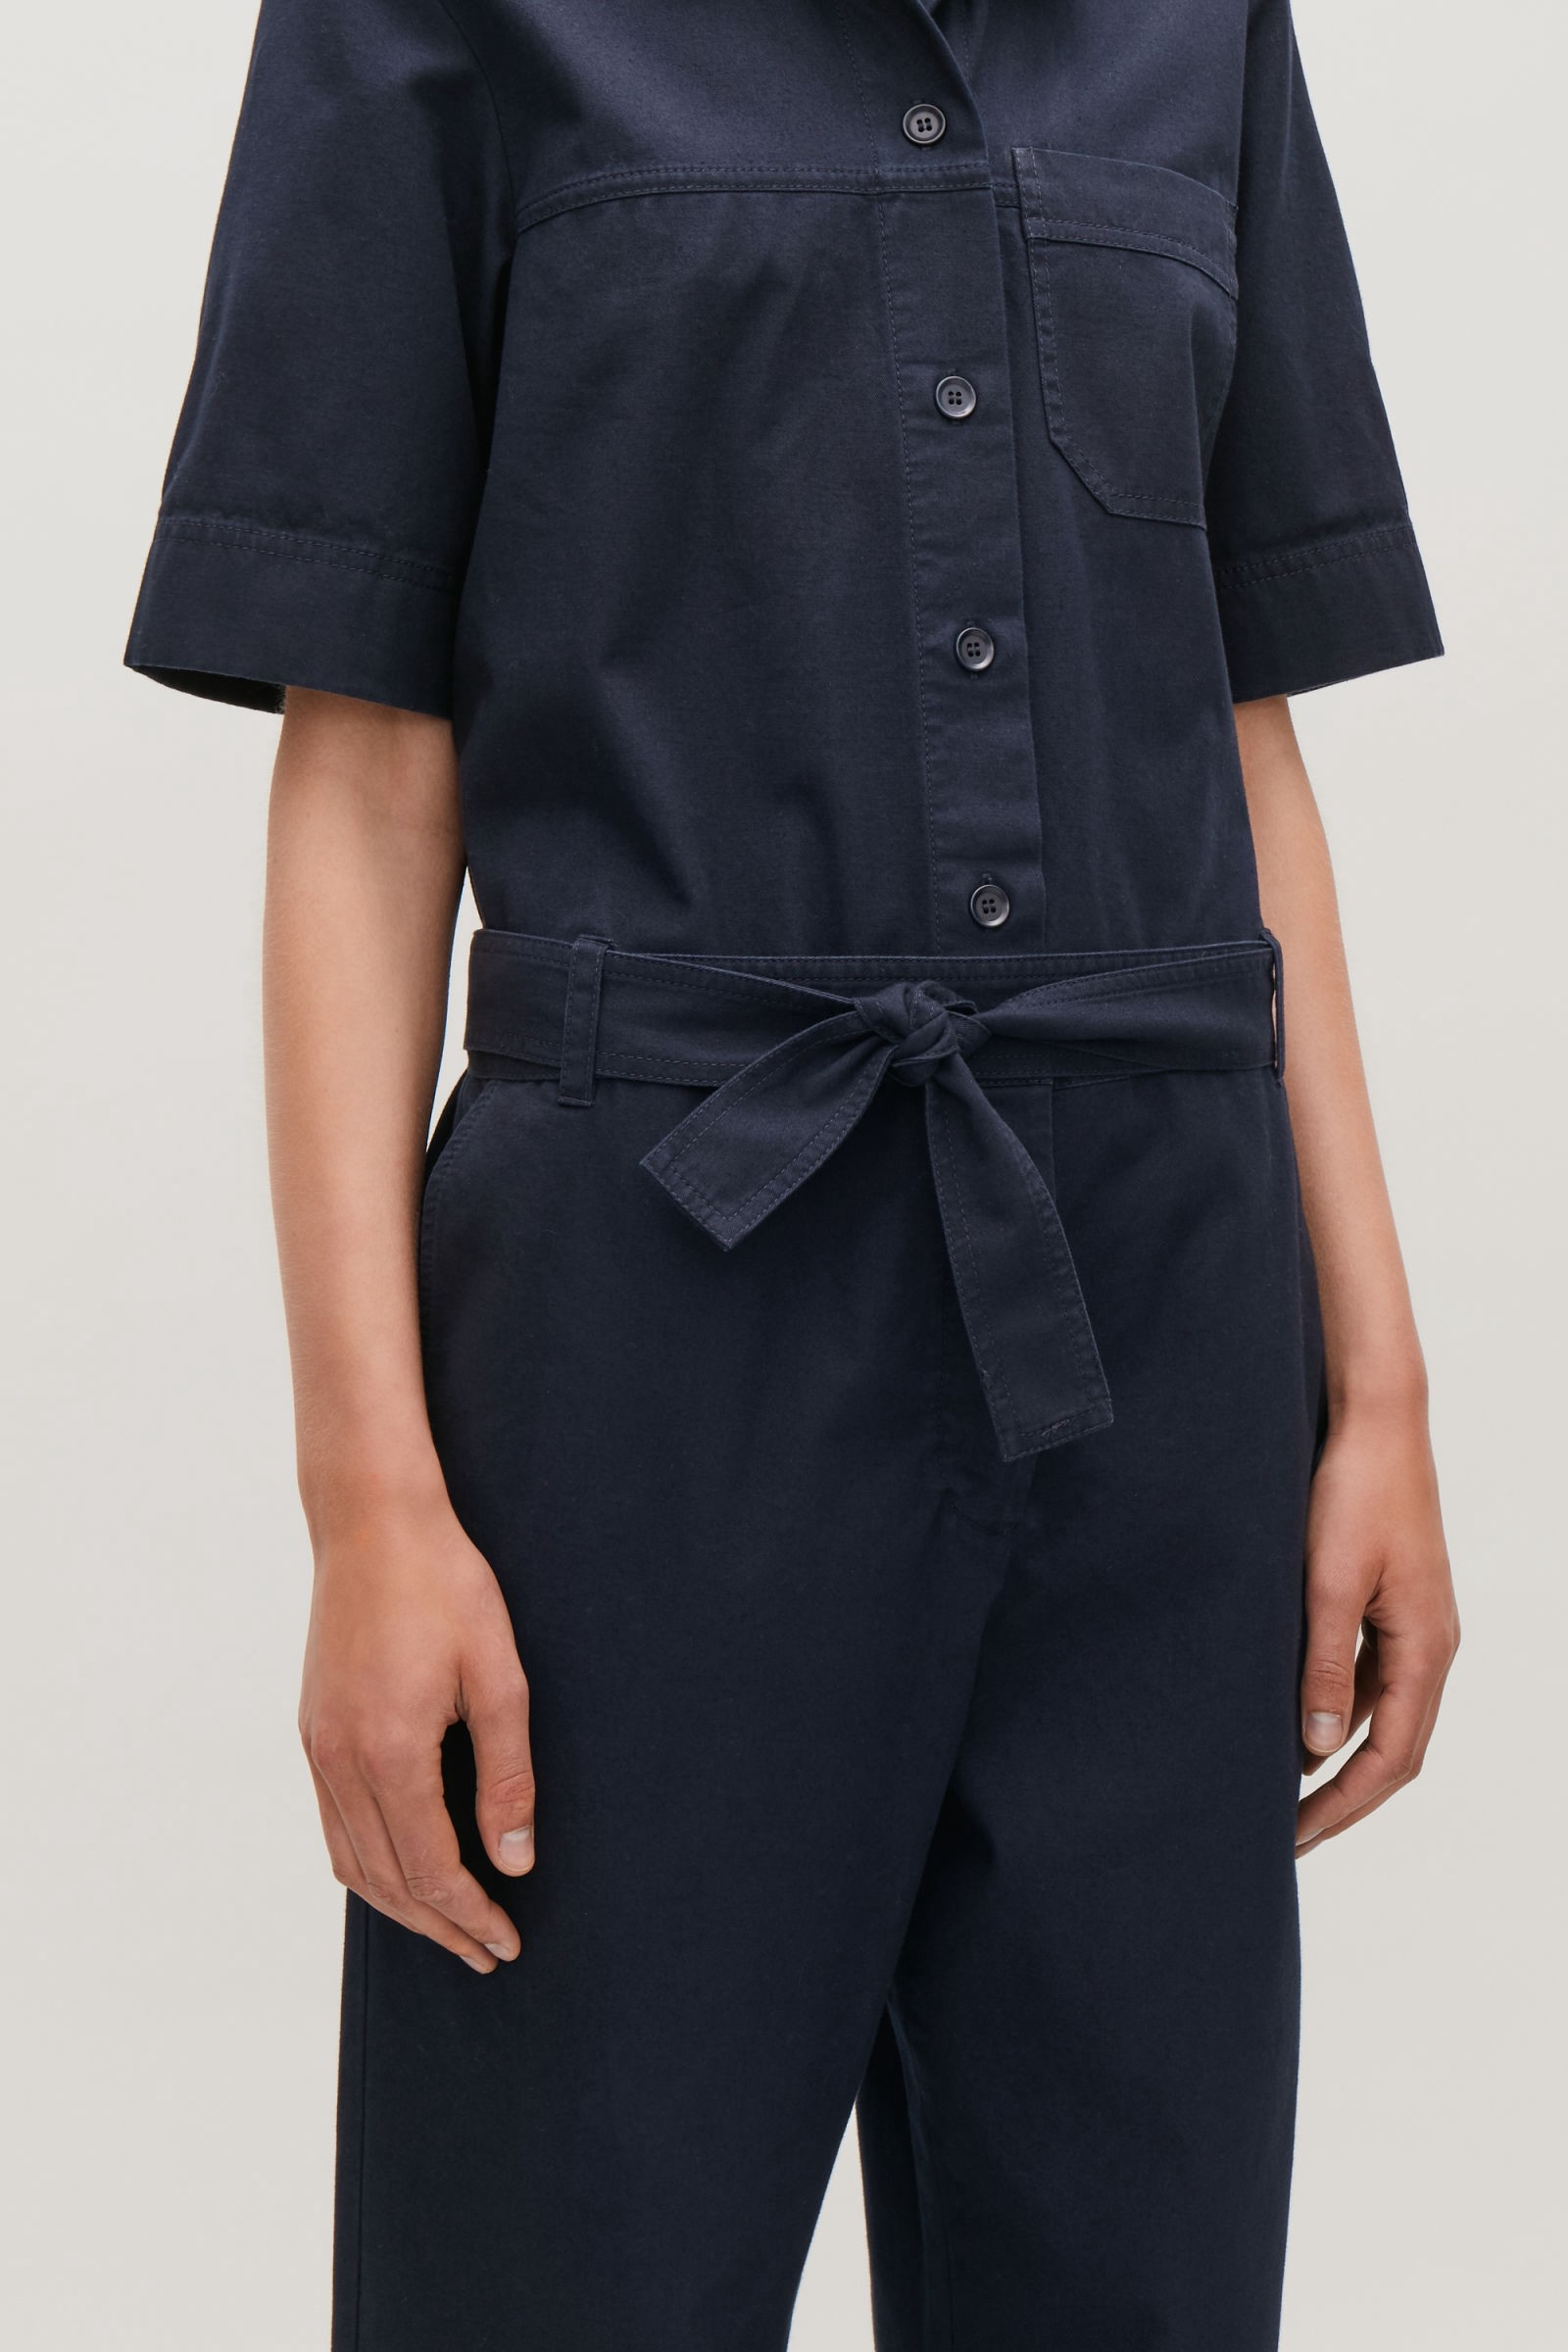 0dceb355cd99 BELTED COTTON JUMPSUIT - navy(OUT OF STOCK) by COS in 2019 ...